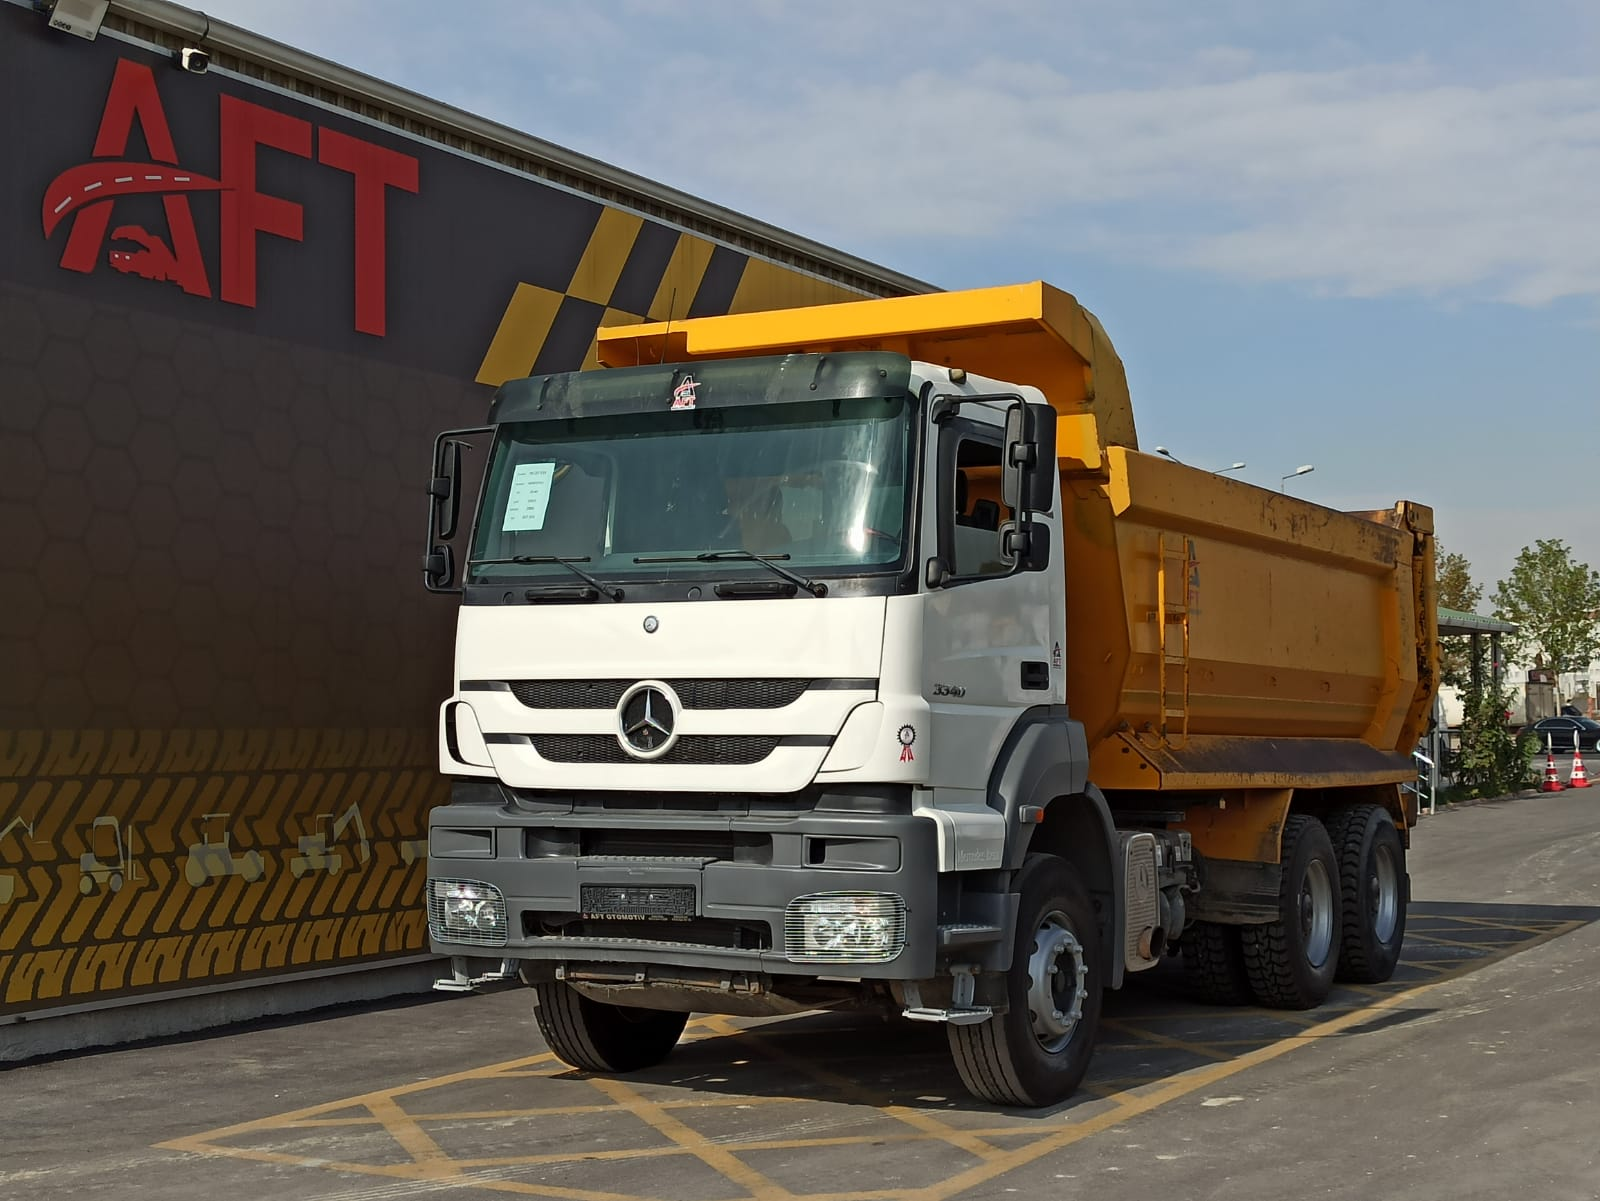 2006 MODEL MERCEDES AXOR 3340 HARDOX TIPPER